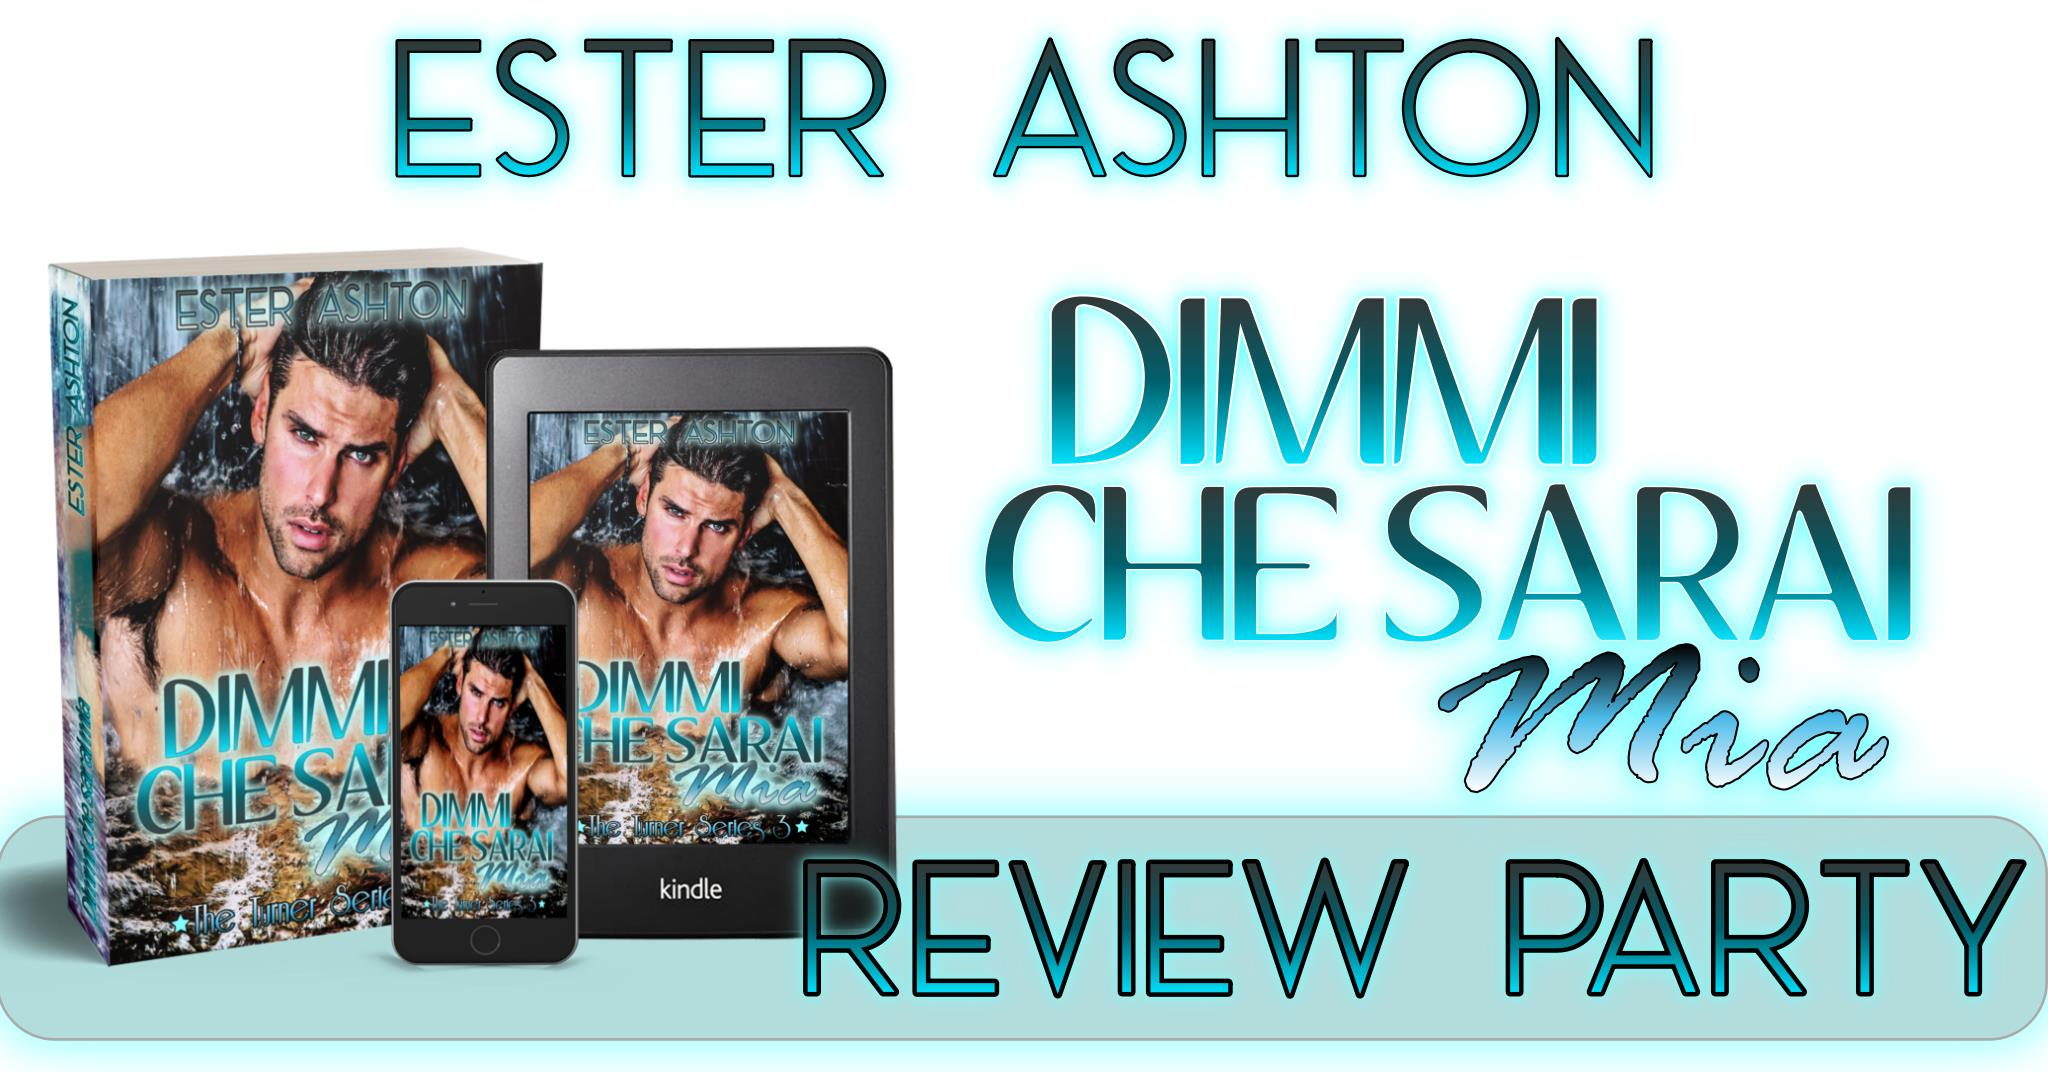 dimmi che sarai mia di ester ashton review party